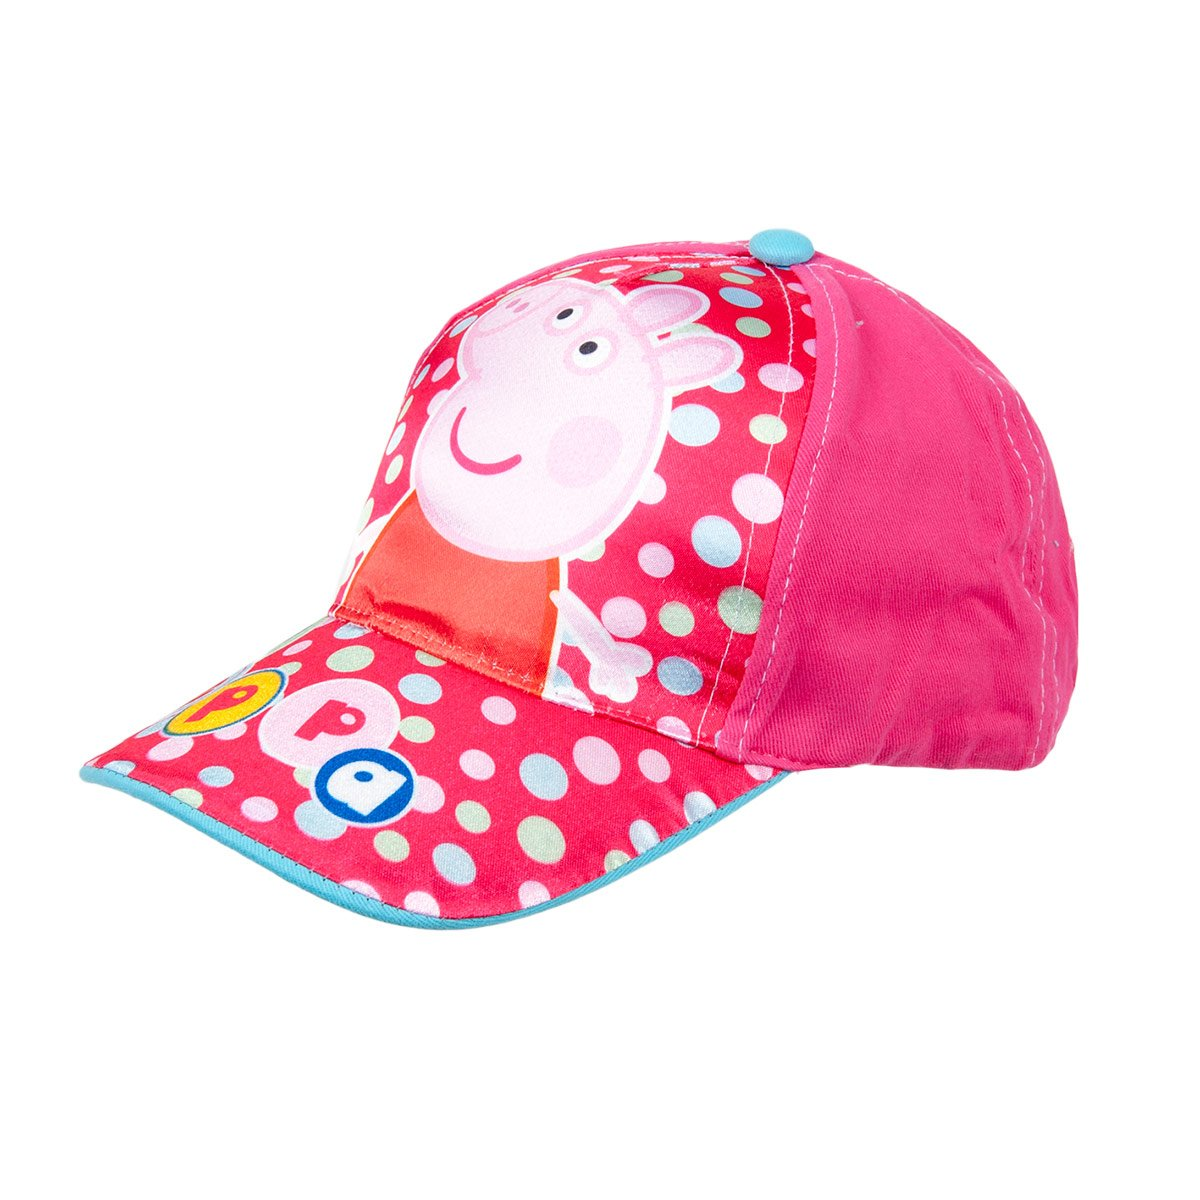 outlet store a0d6c c6690 Cap Peppa Pig for children